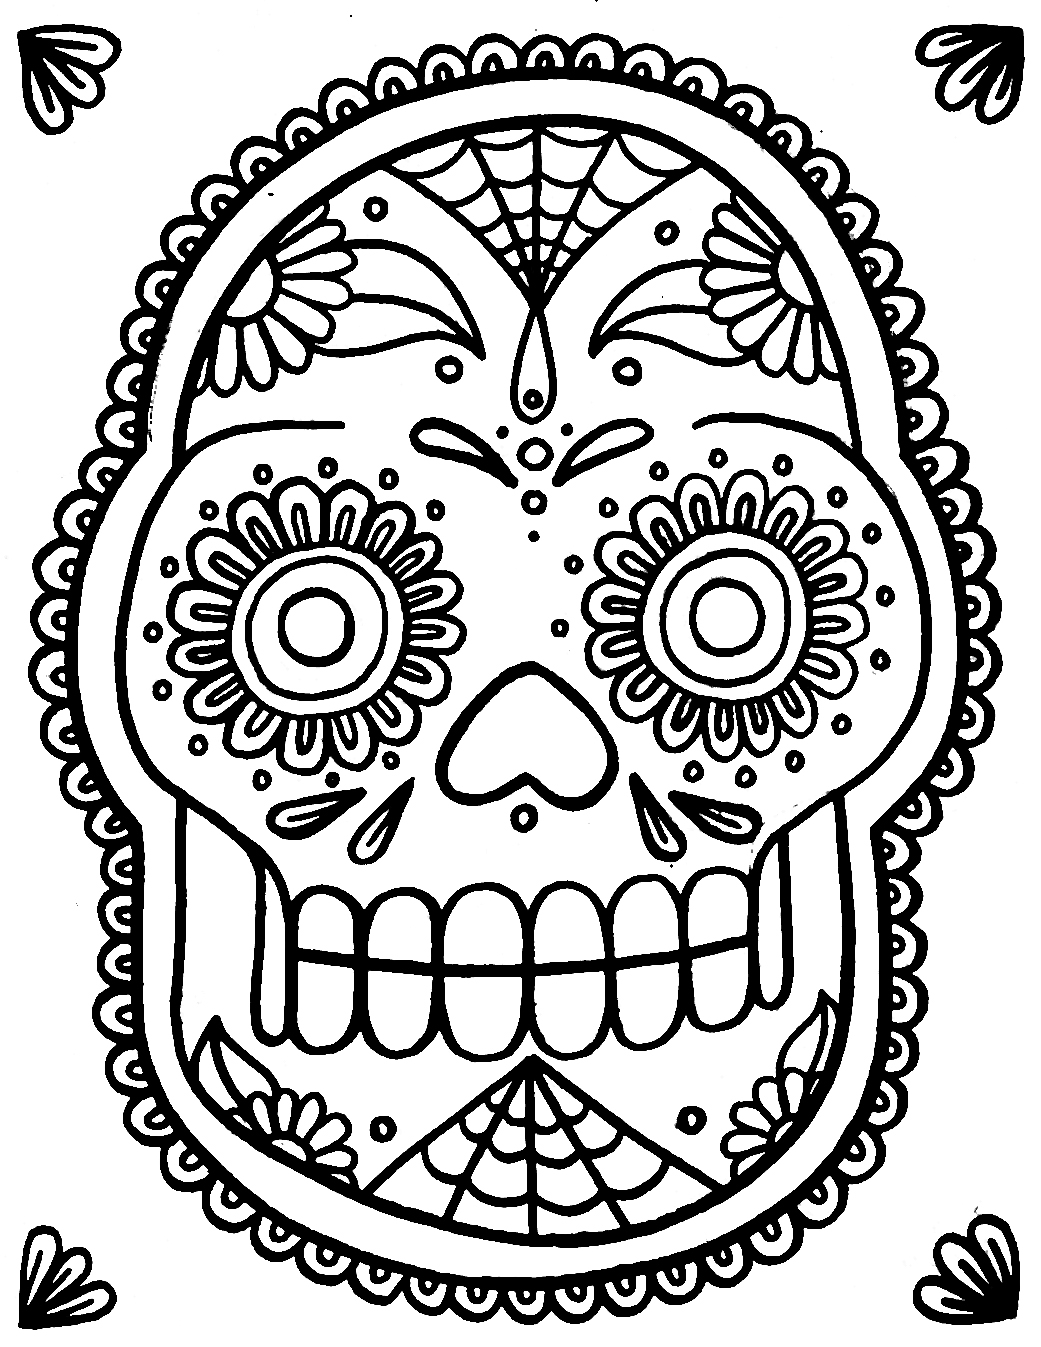 coloring pages skull printable skull coloring pages coloringmecom pages skull coloring